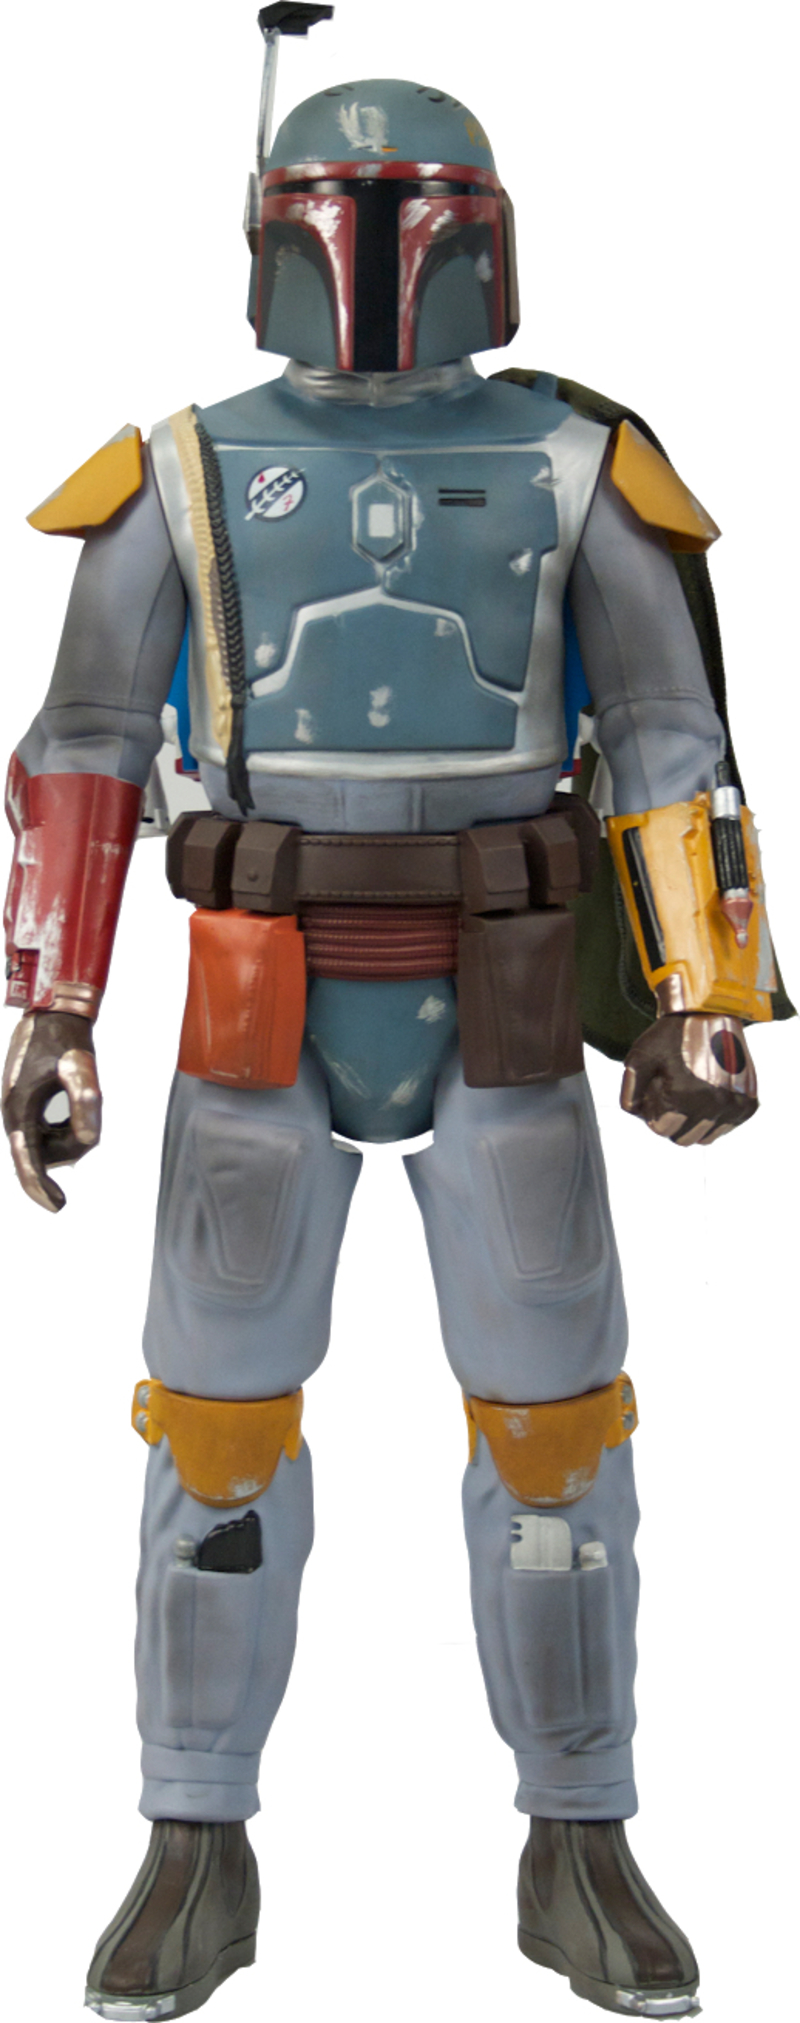 "JAKKS Pacific ""First Appearance"" Boba Fett (SDCC Exclusive) (2015)"